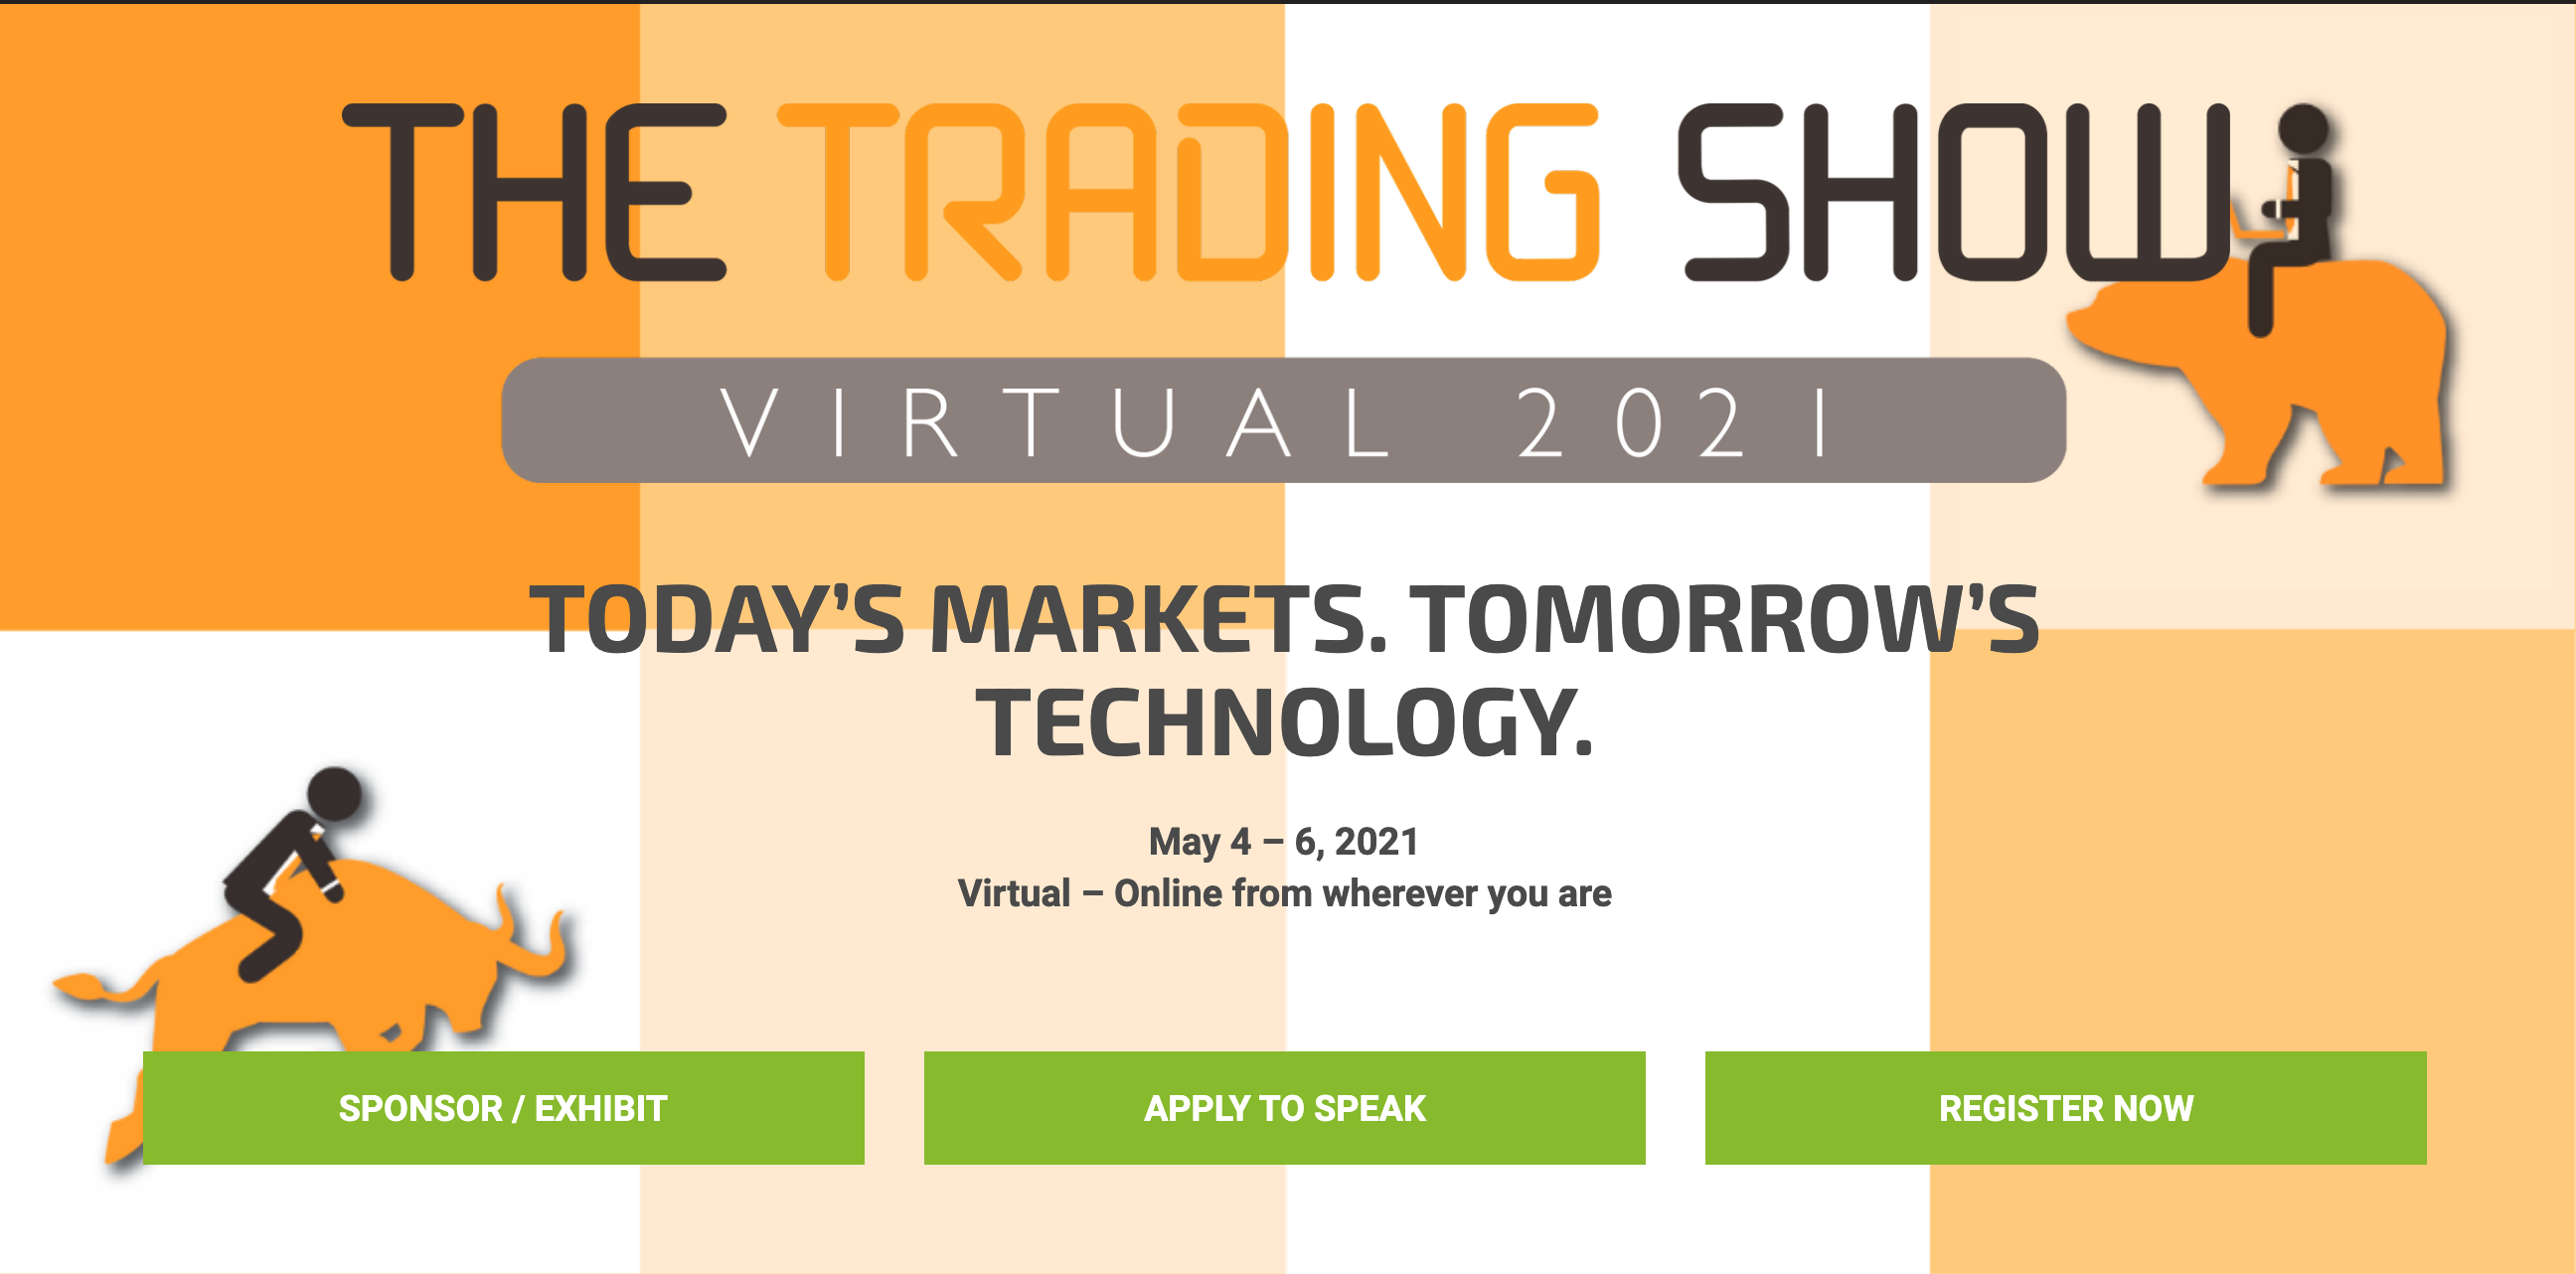 The Trading Show 2021